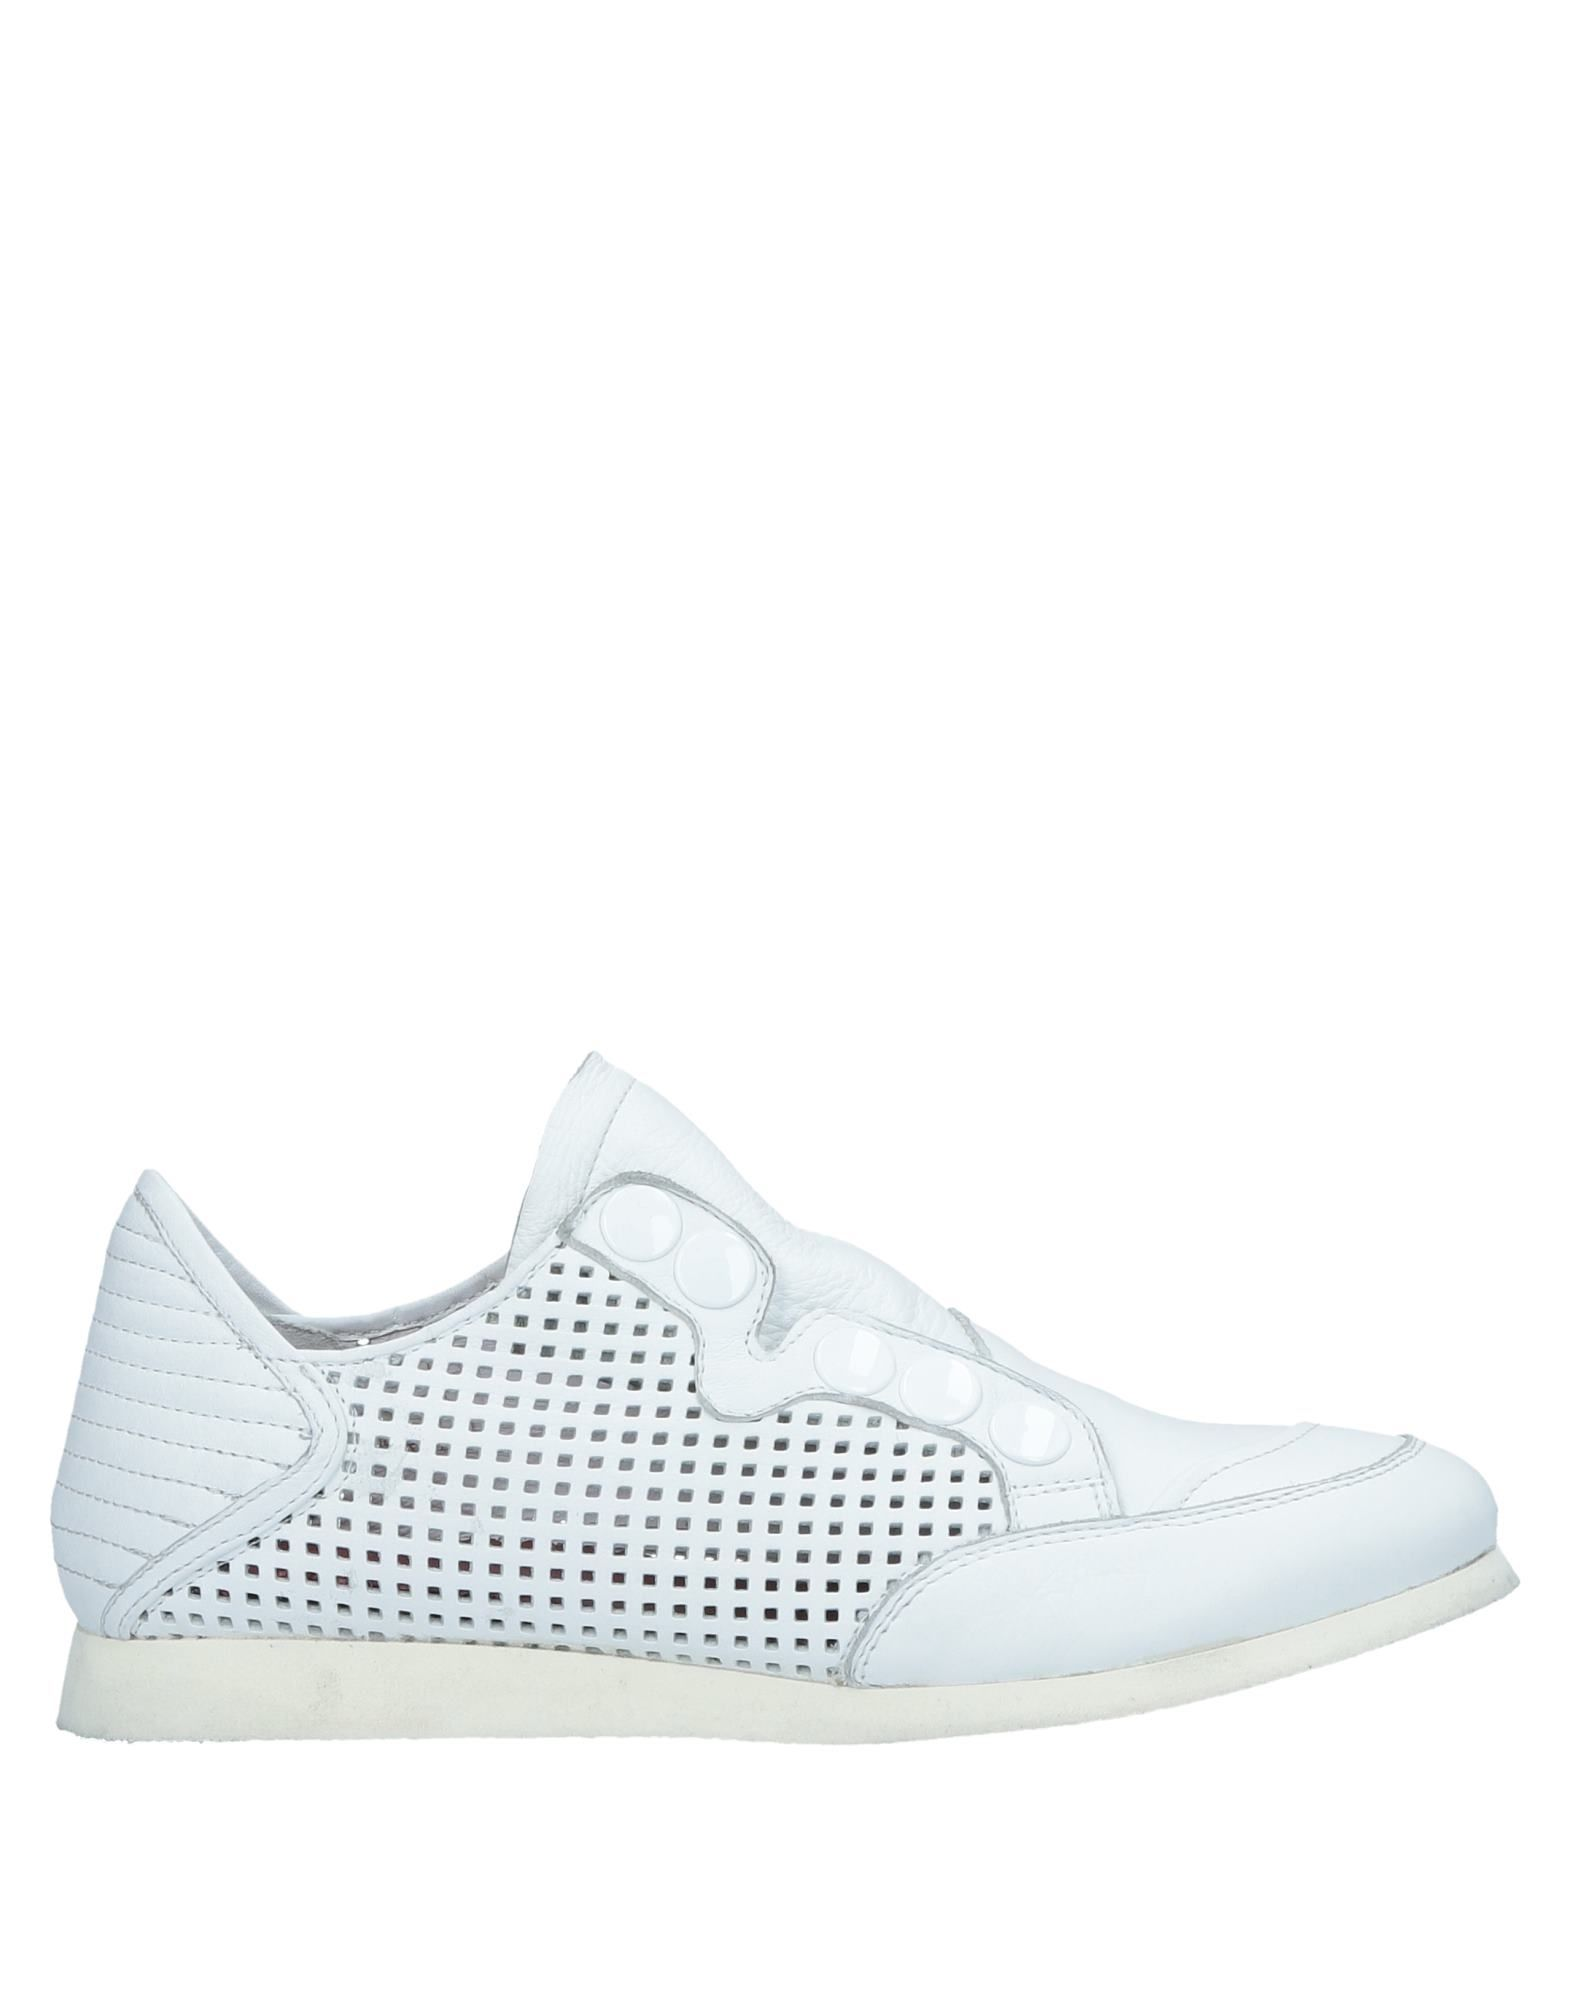 Stilvolle Bordese billige Schuhe Bruno Bordese Stilvolle Sneakers Damen  11534646AA 505c05